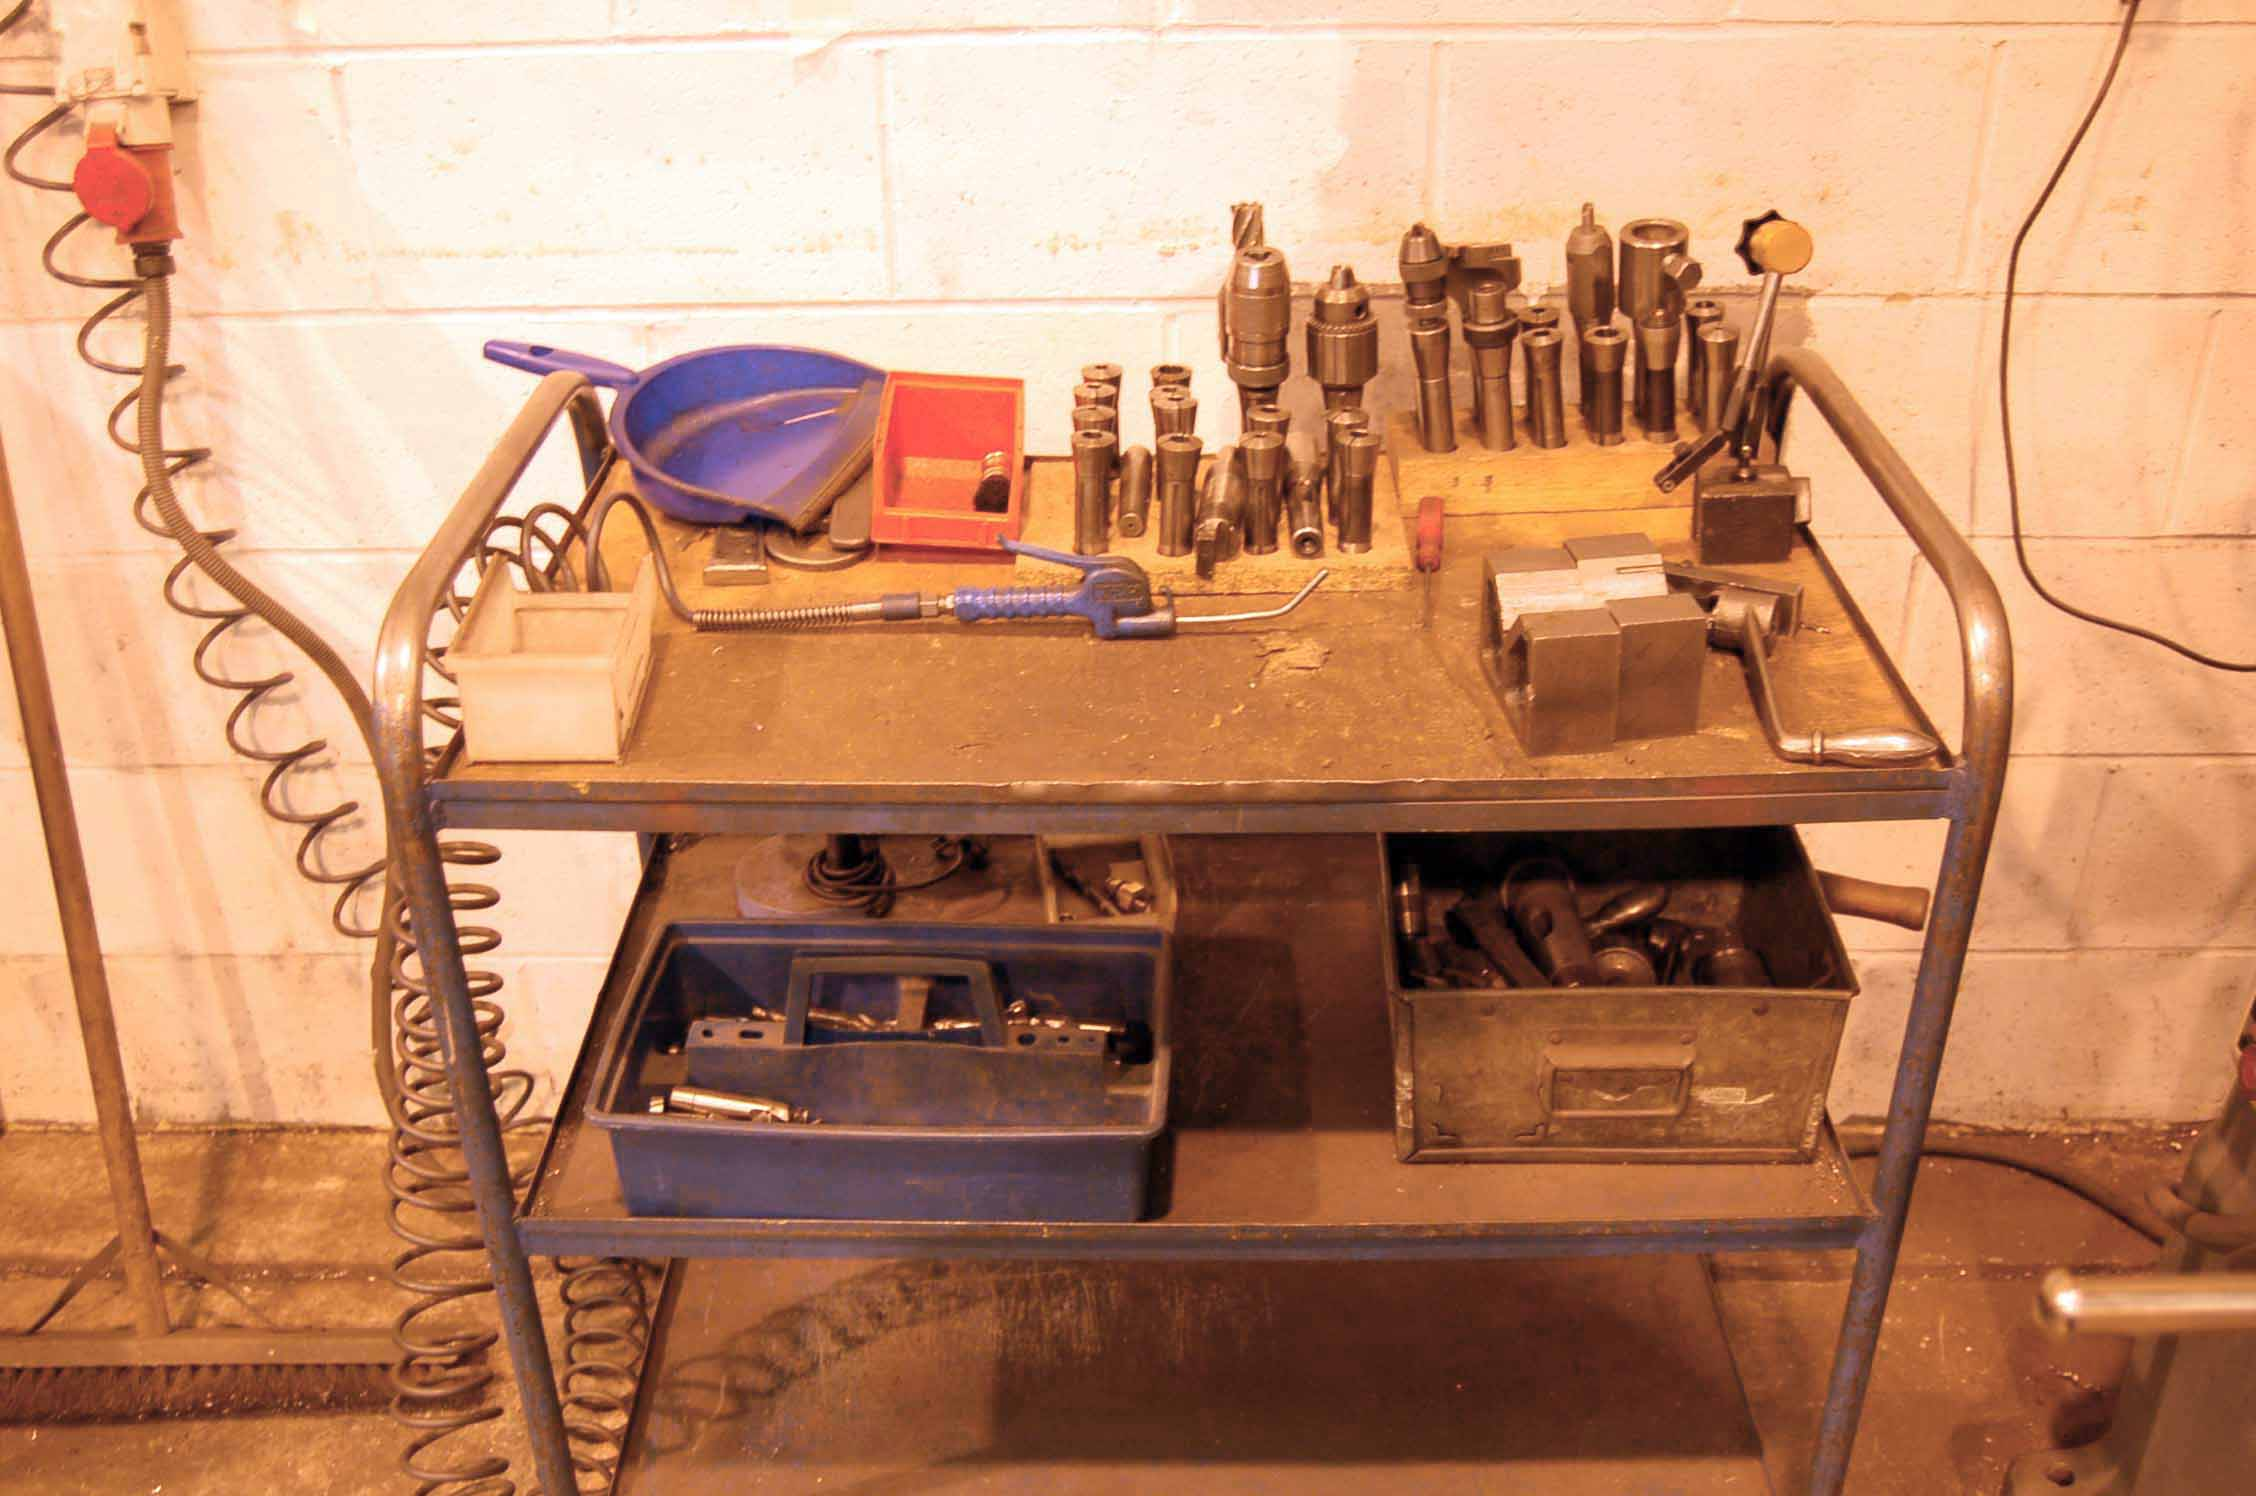 Lot 23 - An EX-CELL-O Model 602 Horizontal Turret Head Milling Machine, Serial No. 6021584A with 1070mm x